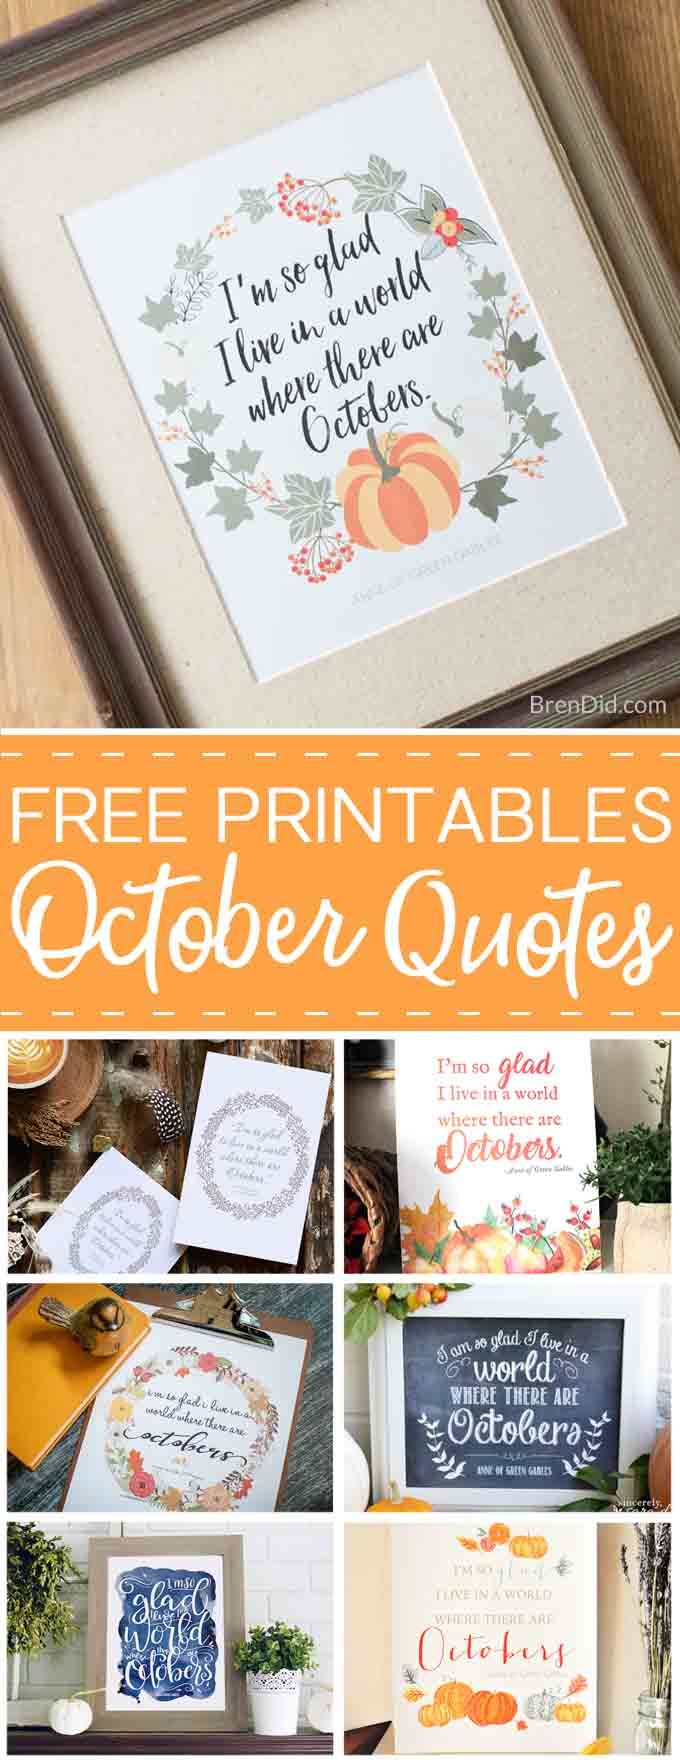 Free Printable Fall Quote:  I'm so glad I live in a world where there are Octobers , Anne of Green Gables, favorite fall quotes, fall print, free fall printable #streamteam